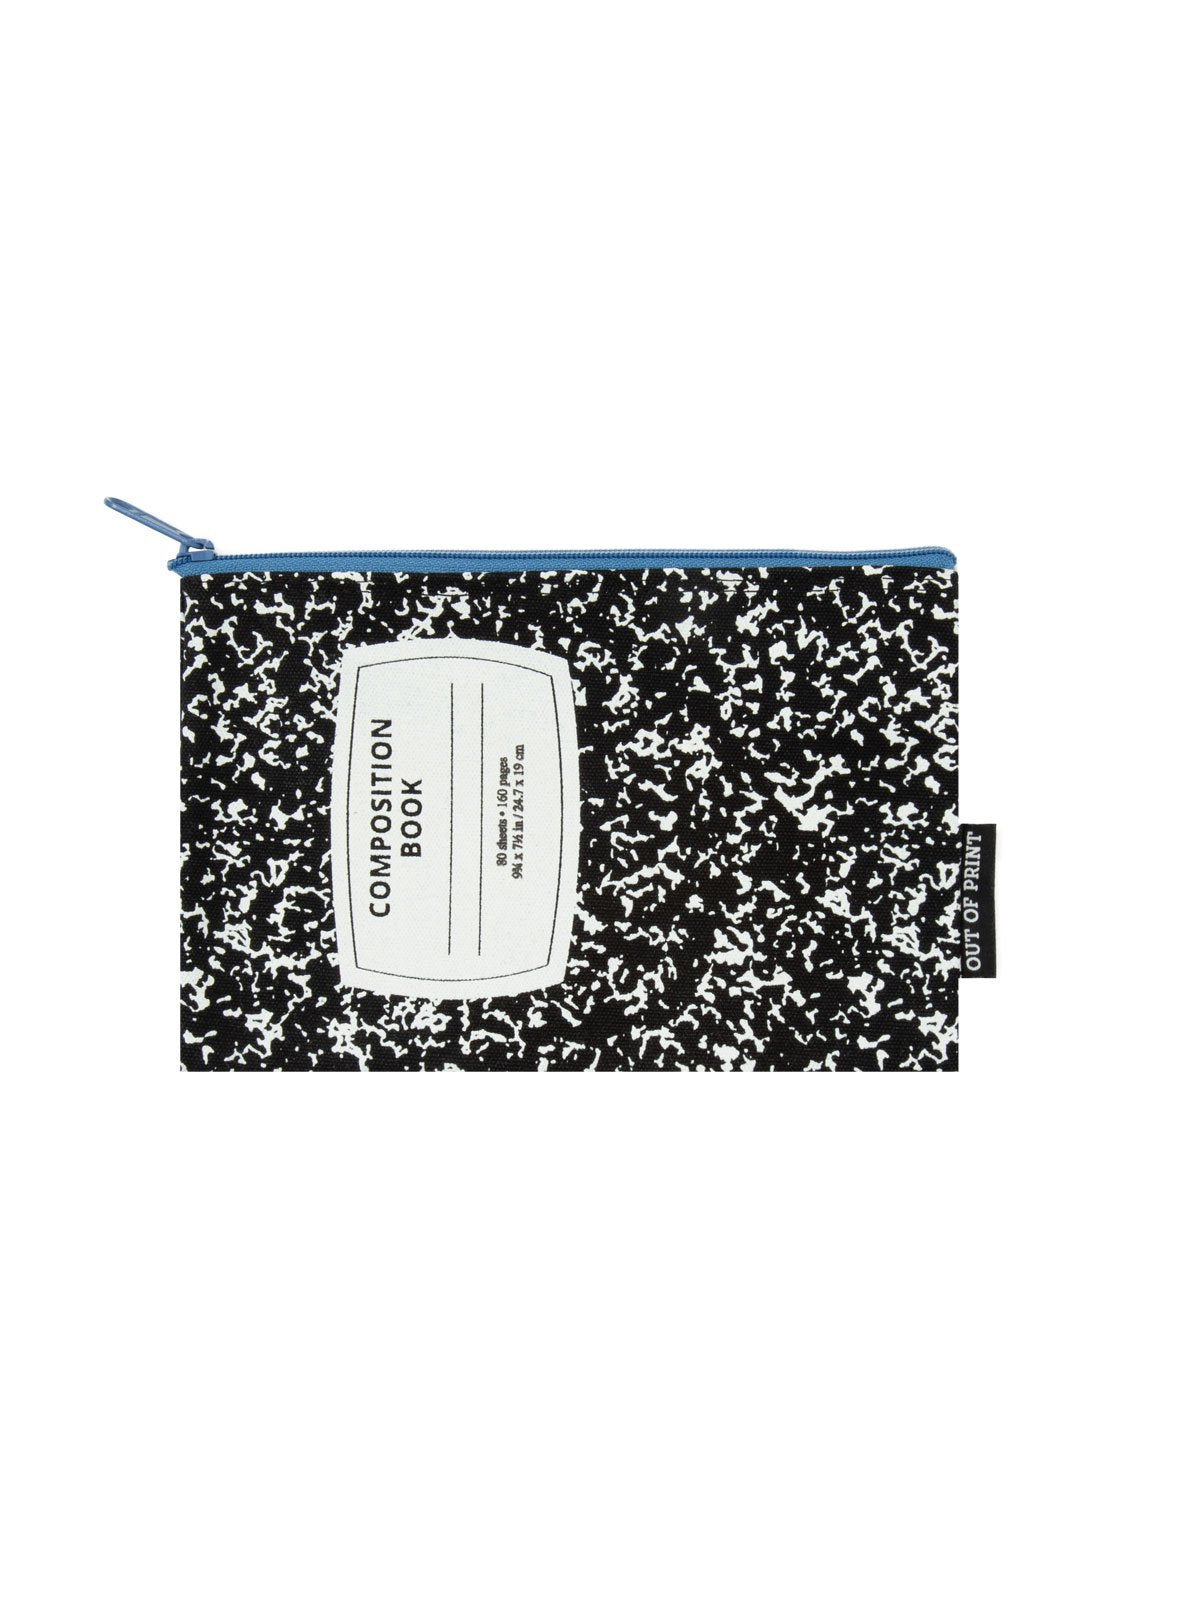 Out of Print Composition Notebook Pencilcase